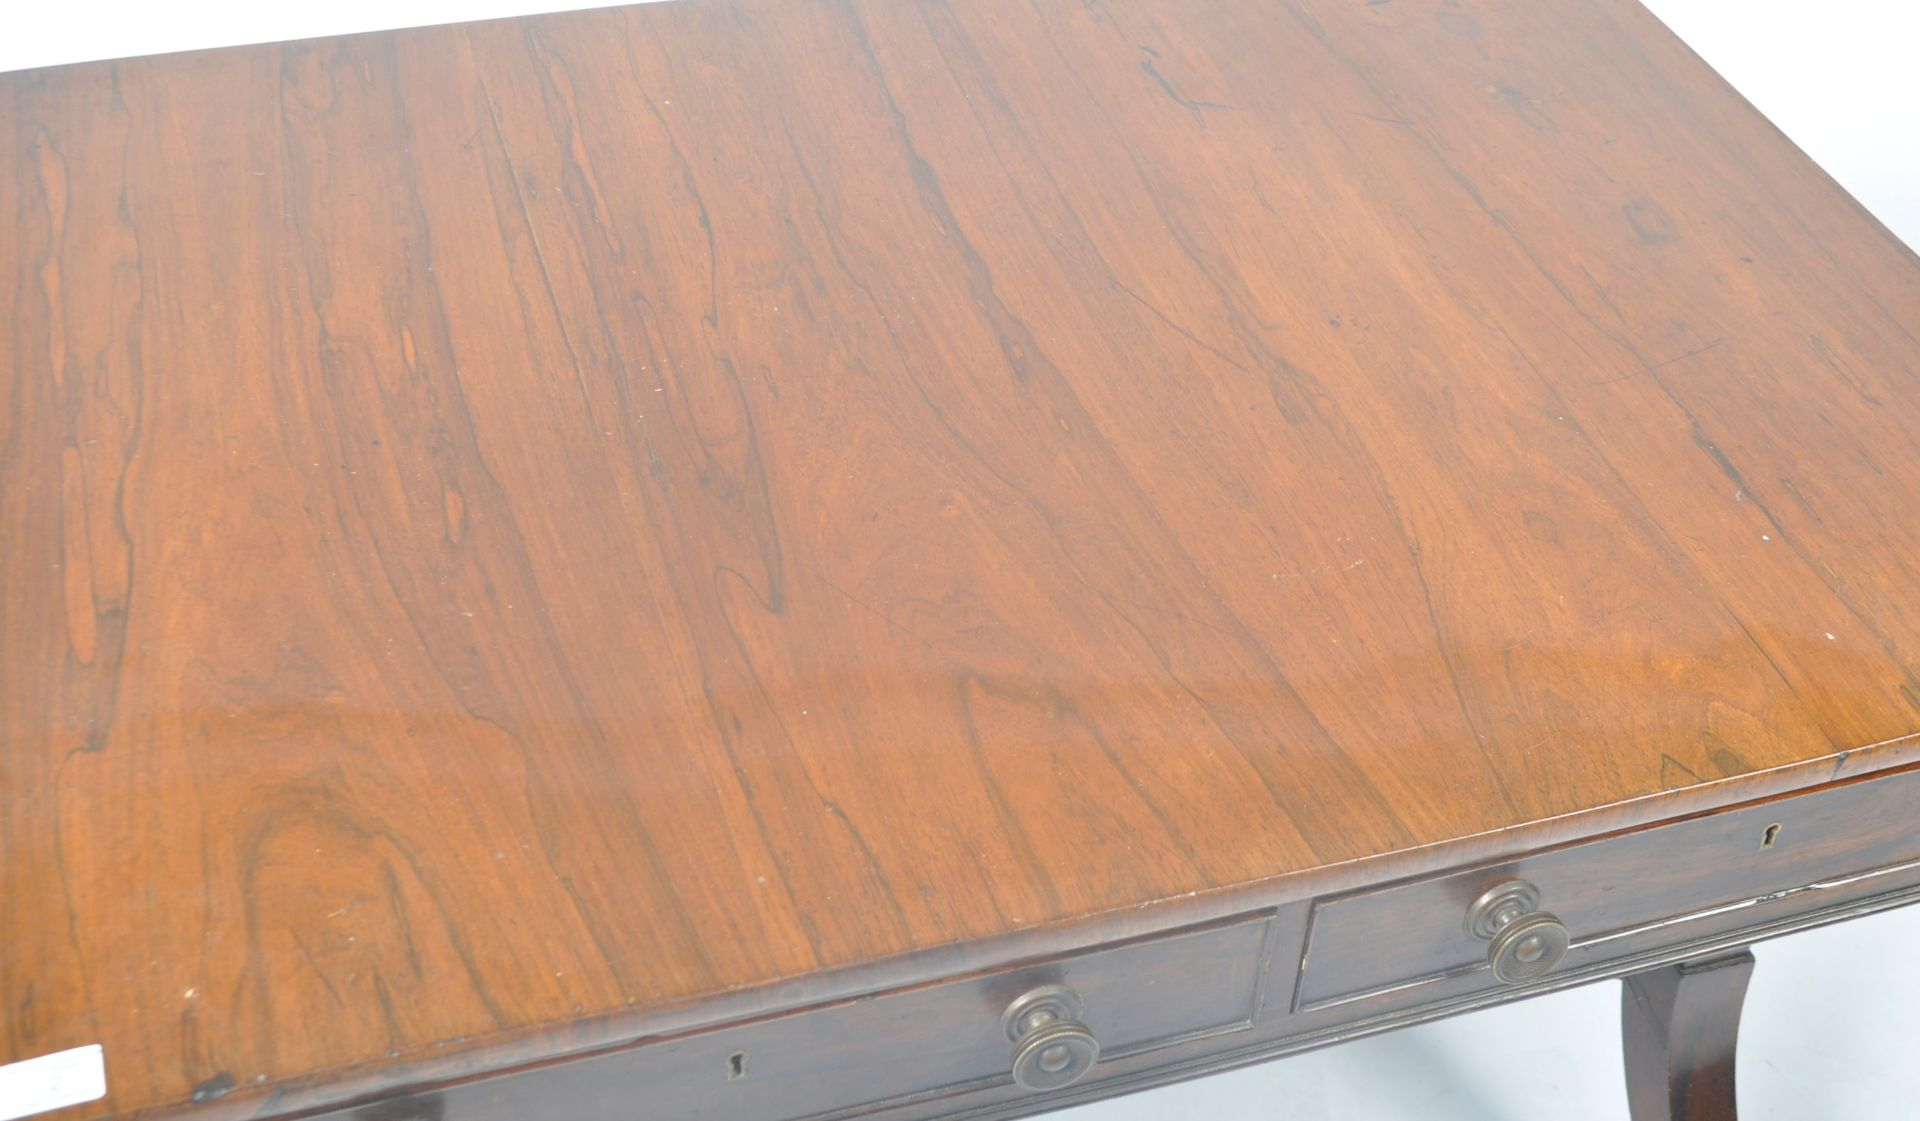 ANTIQUE ROSEWOOD REGENCY SOFA TABLE RETAILED BY HARRIS OF LONDON - Image 4 of 10